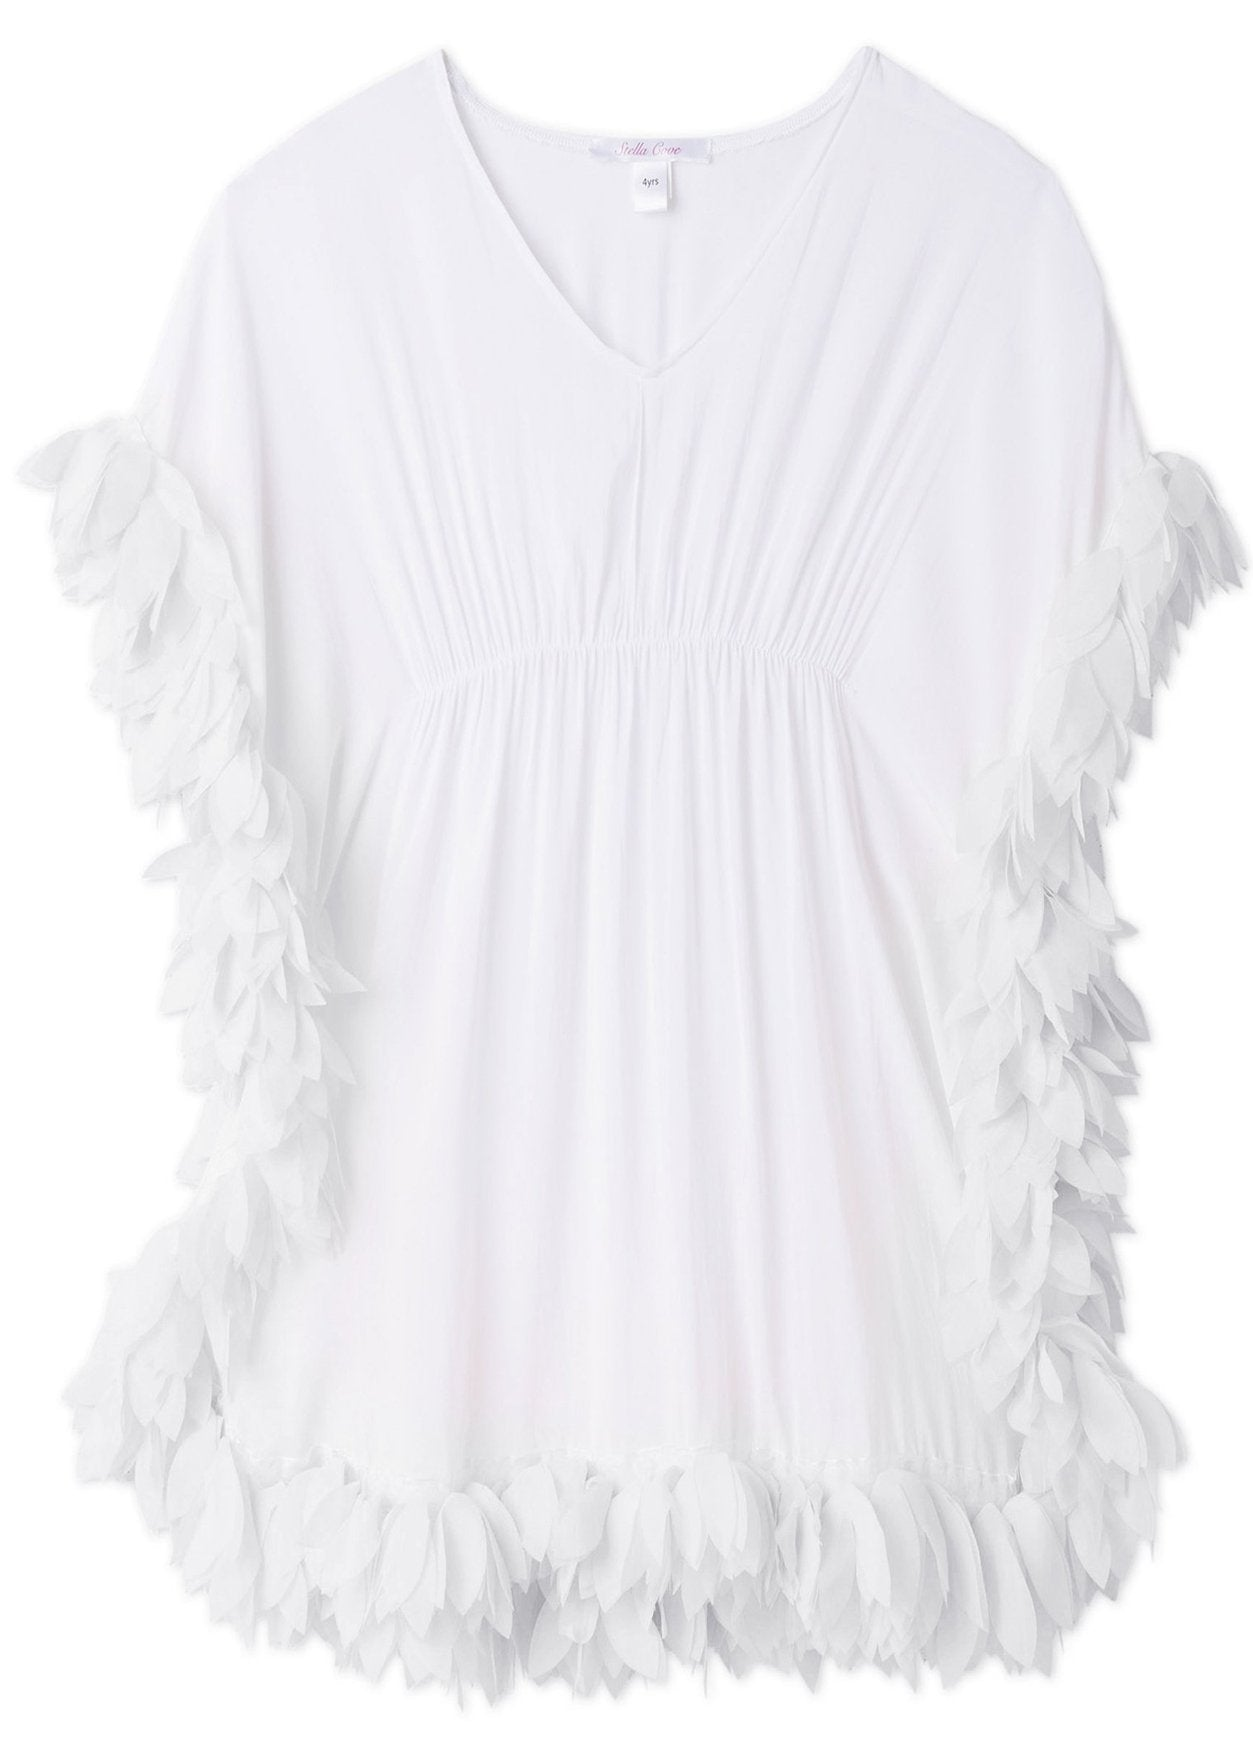 White Cover-up Poncho with White Petals